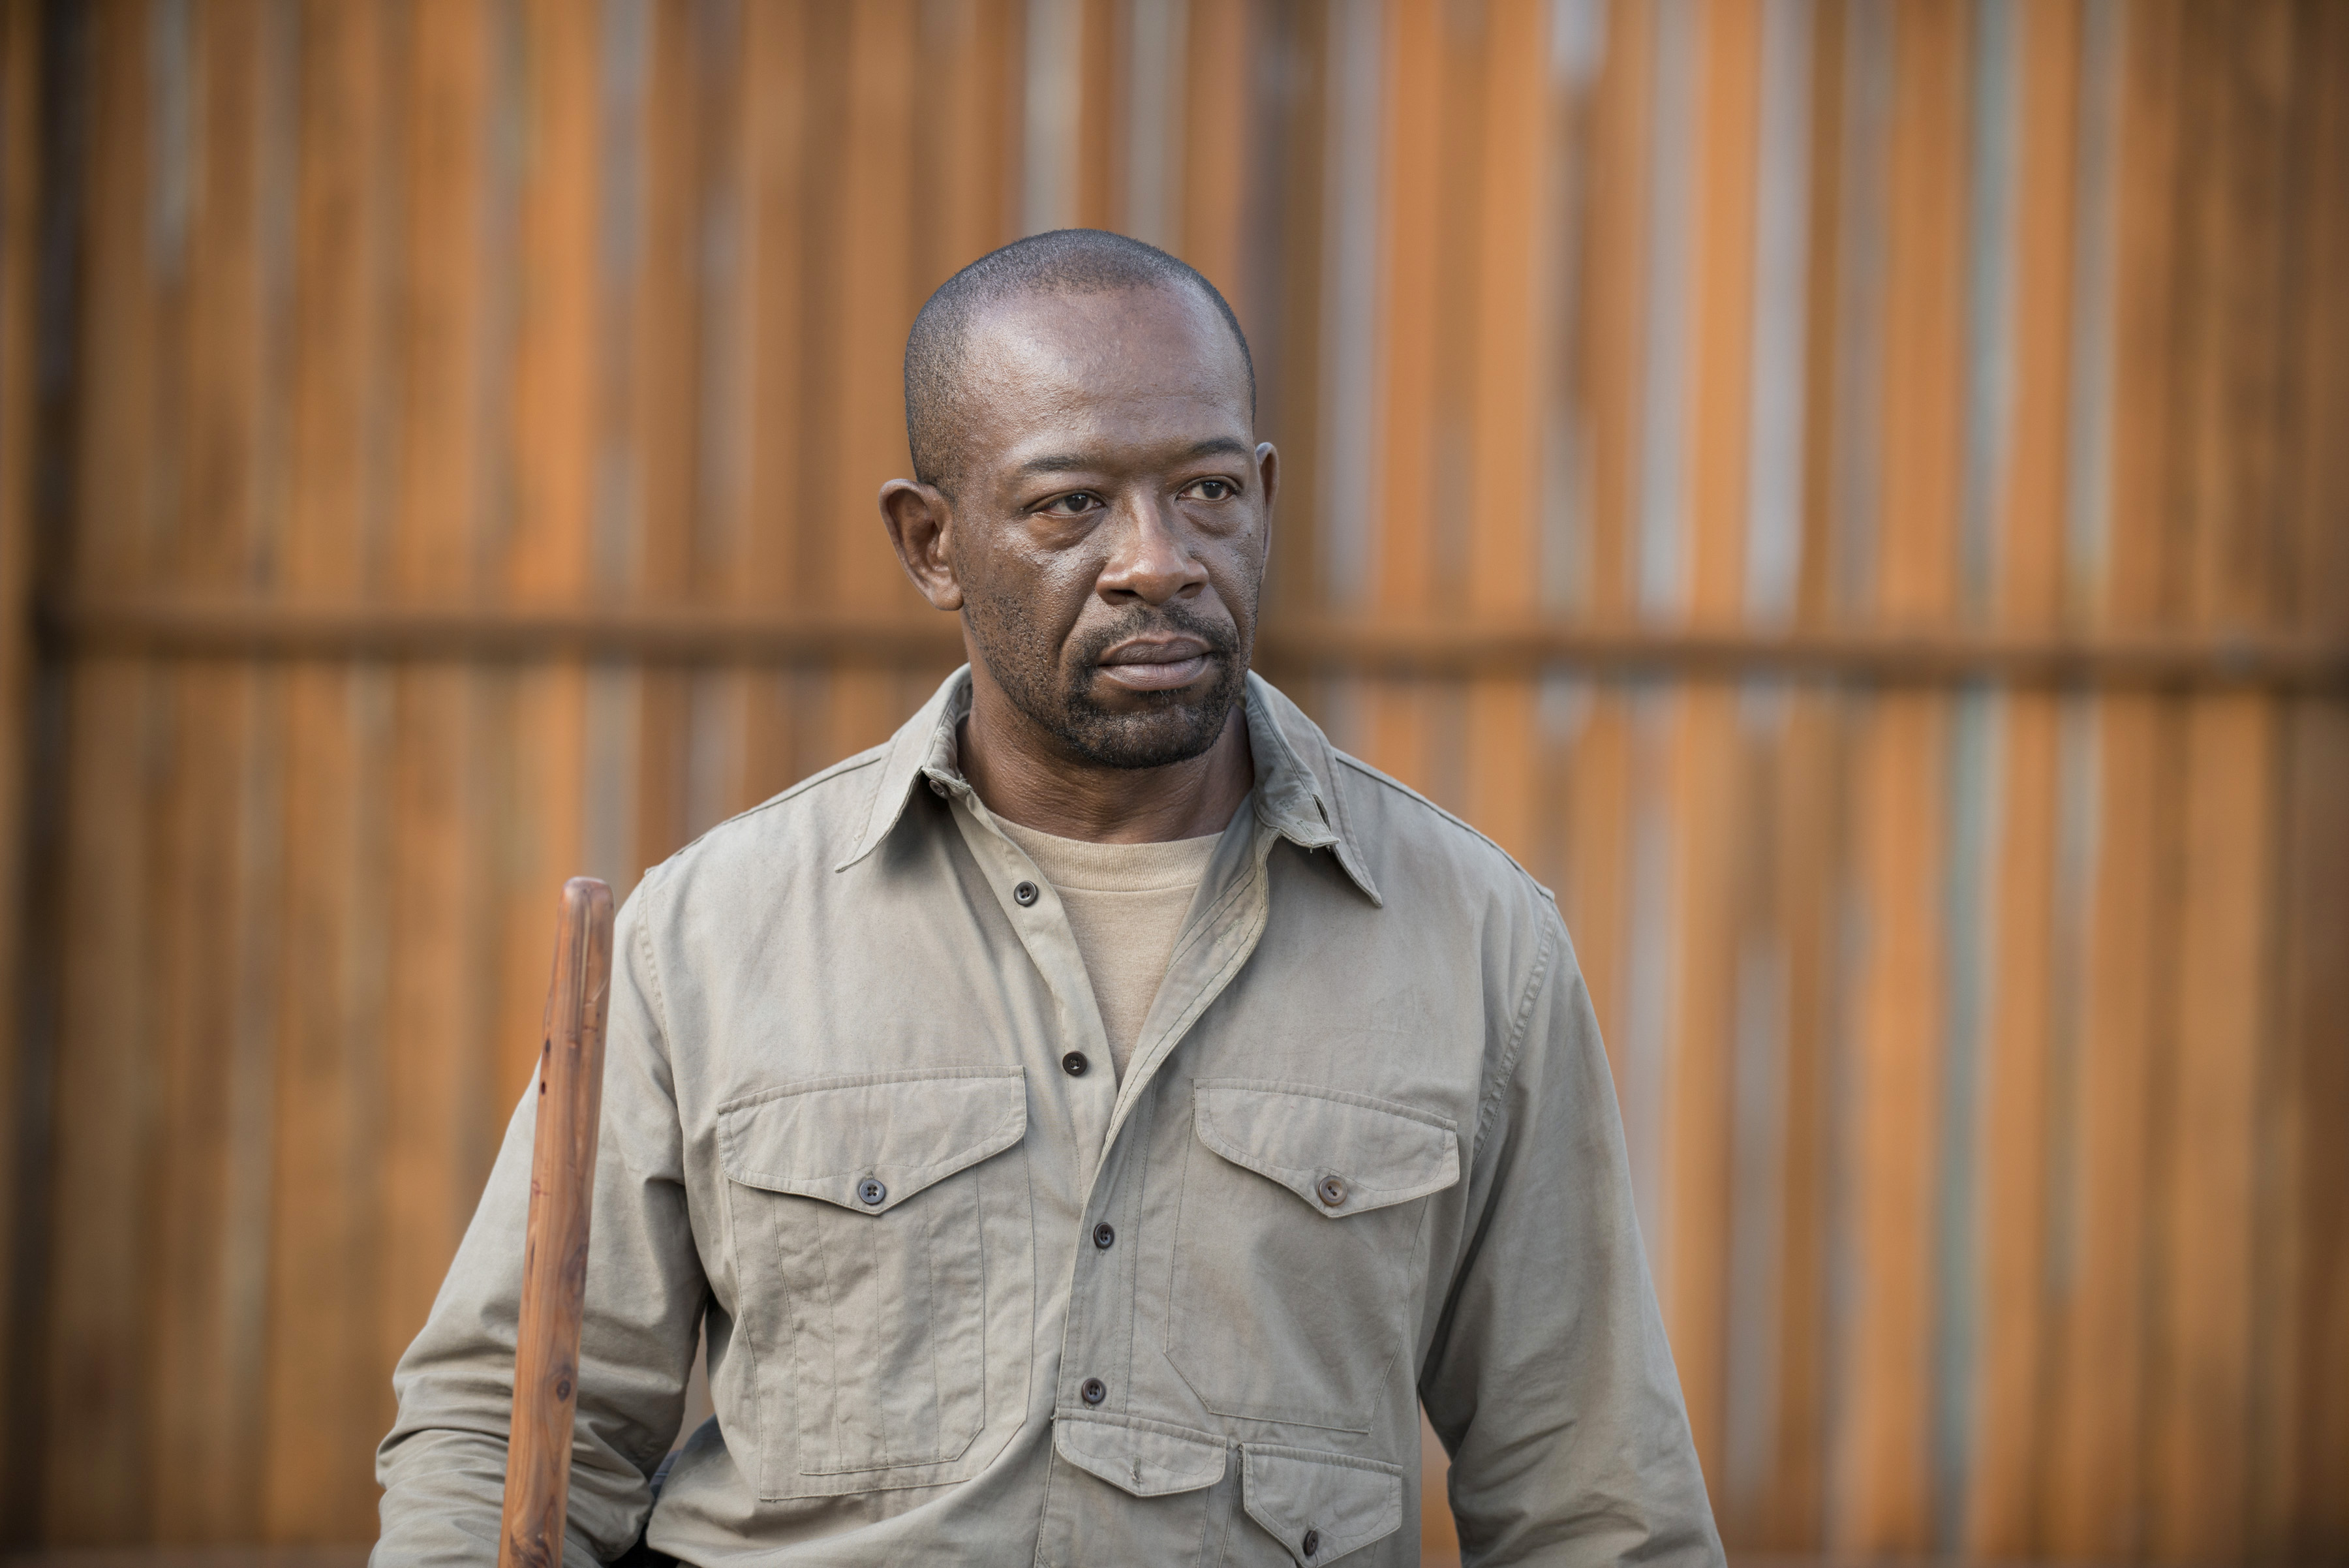 Things get tricky for Morgan (Lennie James) when the Wolves invade Alexandria.